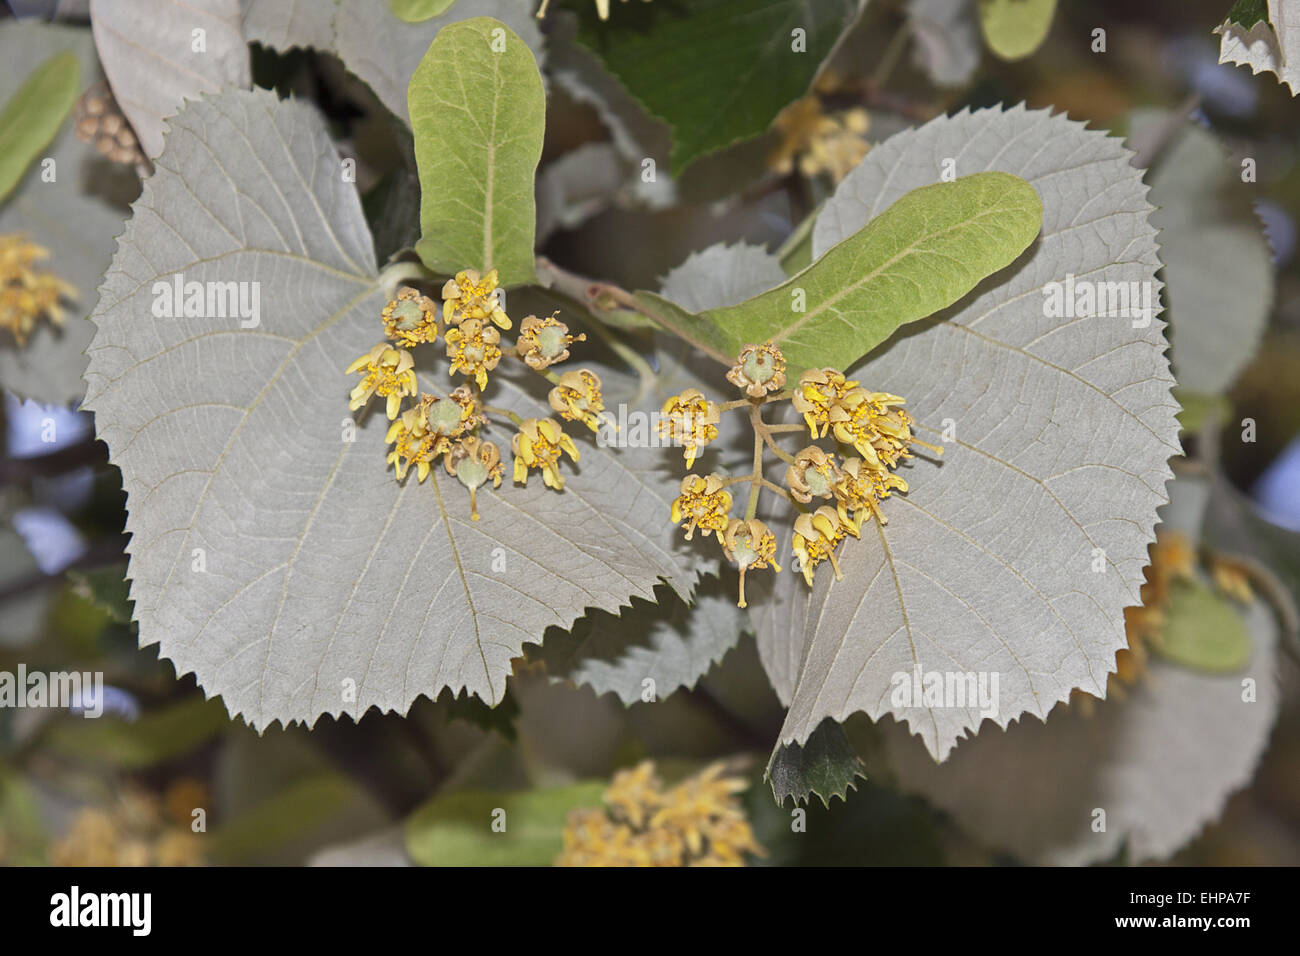 Lime blossoms - Stock Image